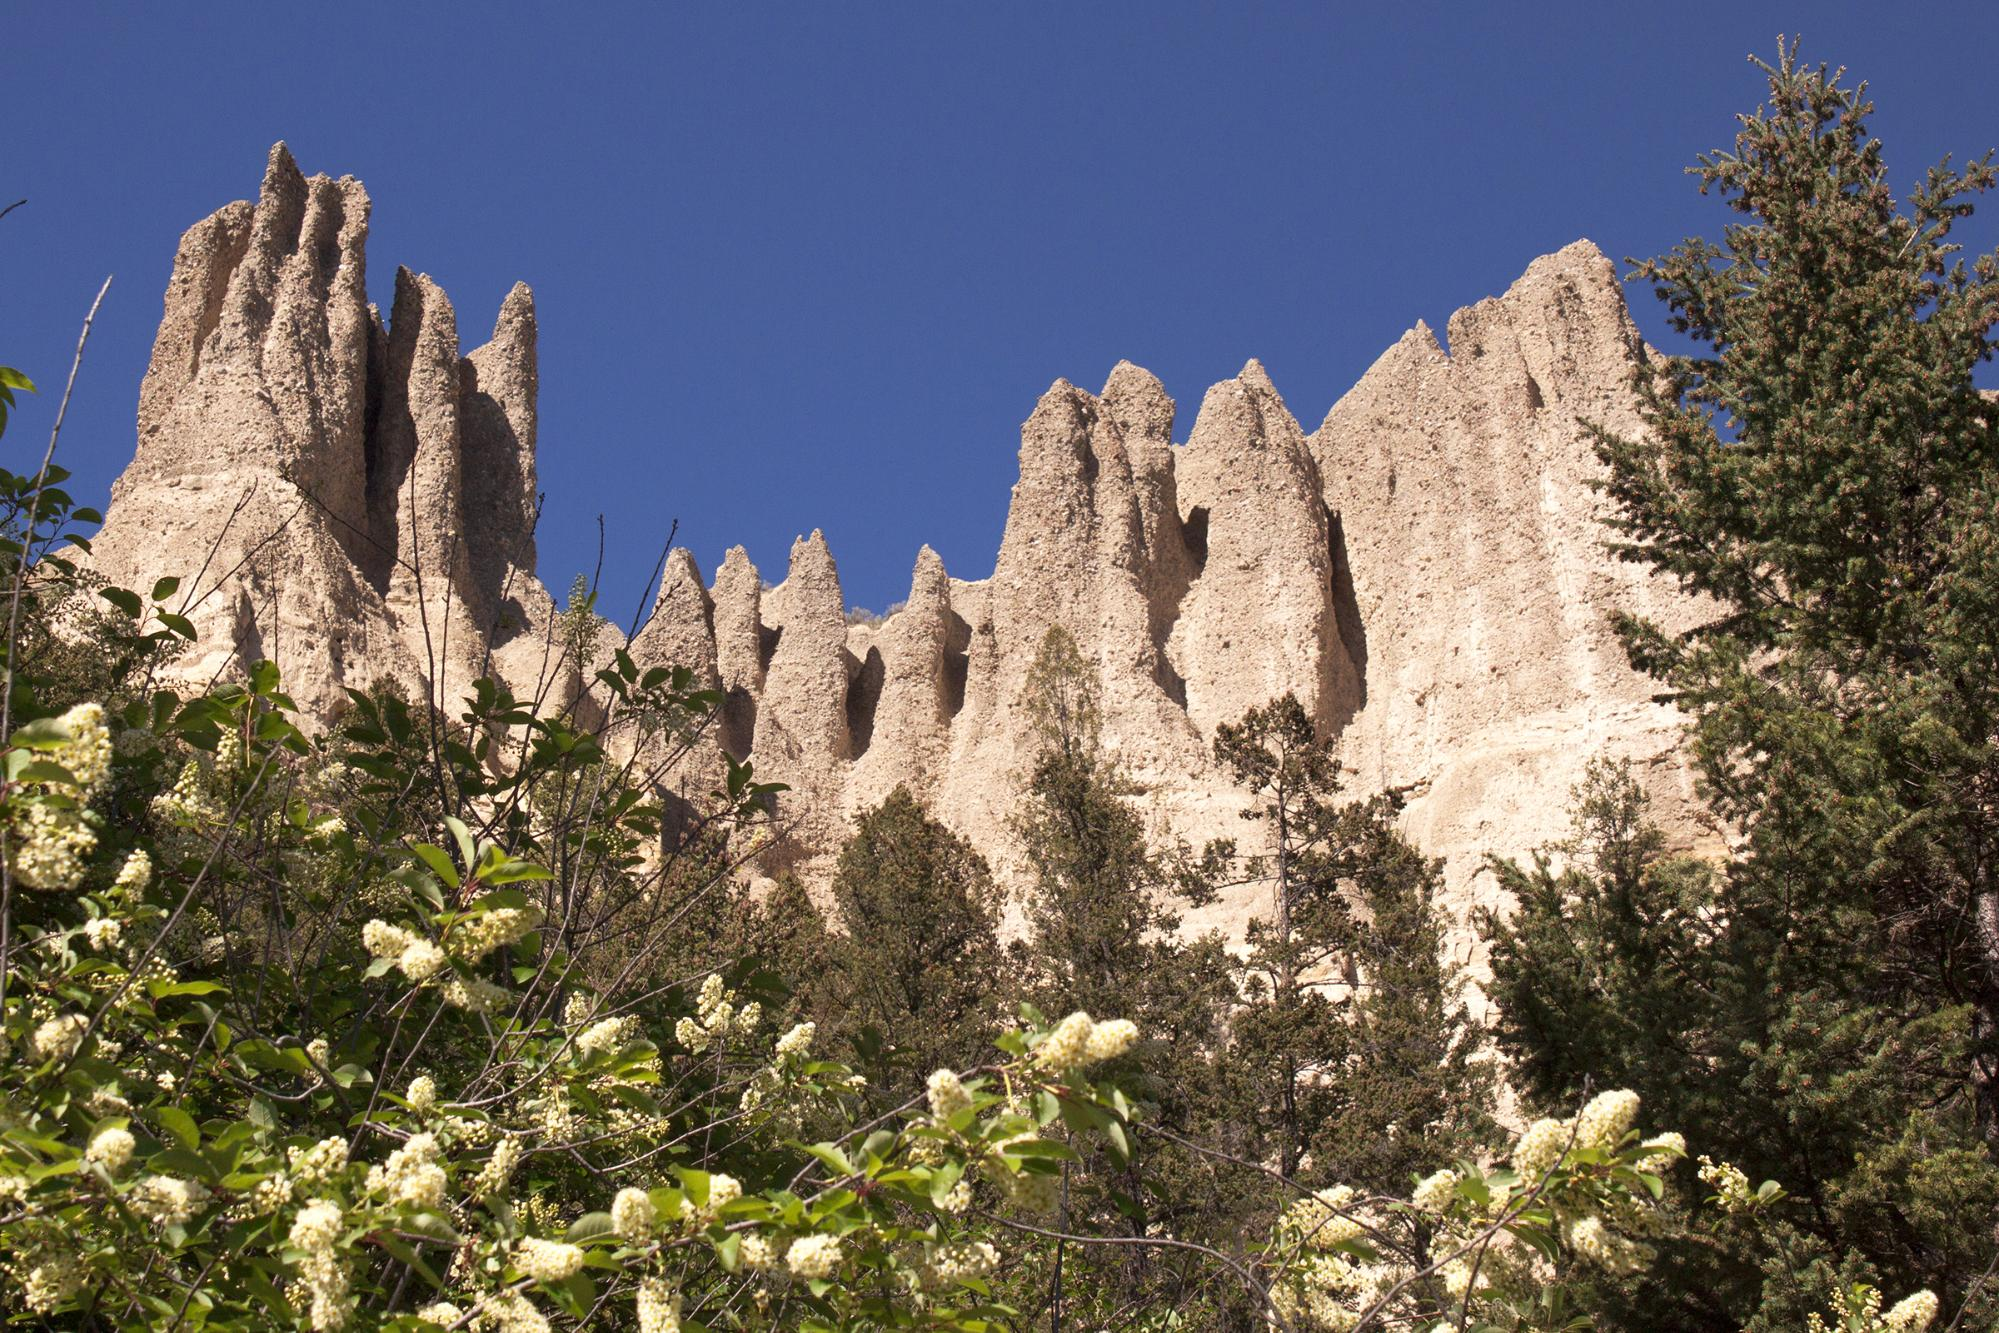 Looking up at a rock formation under a clear blue sky.